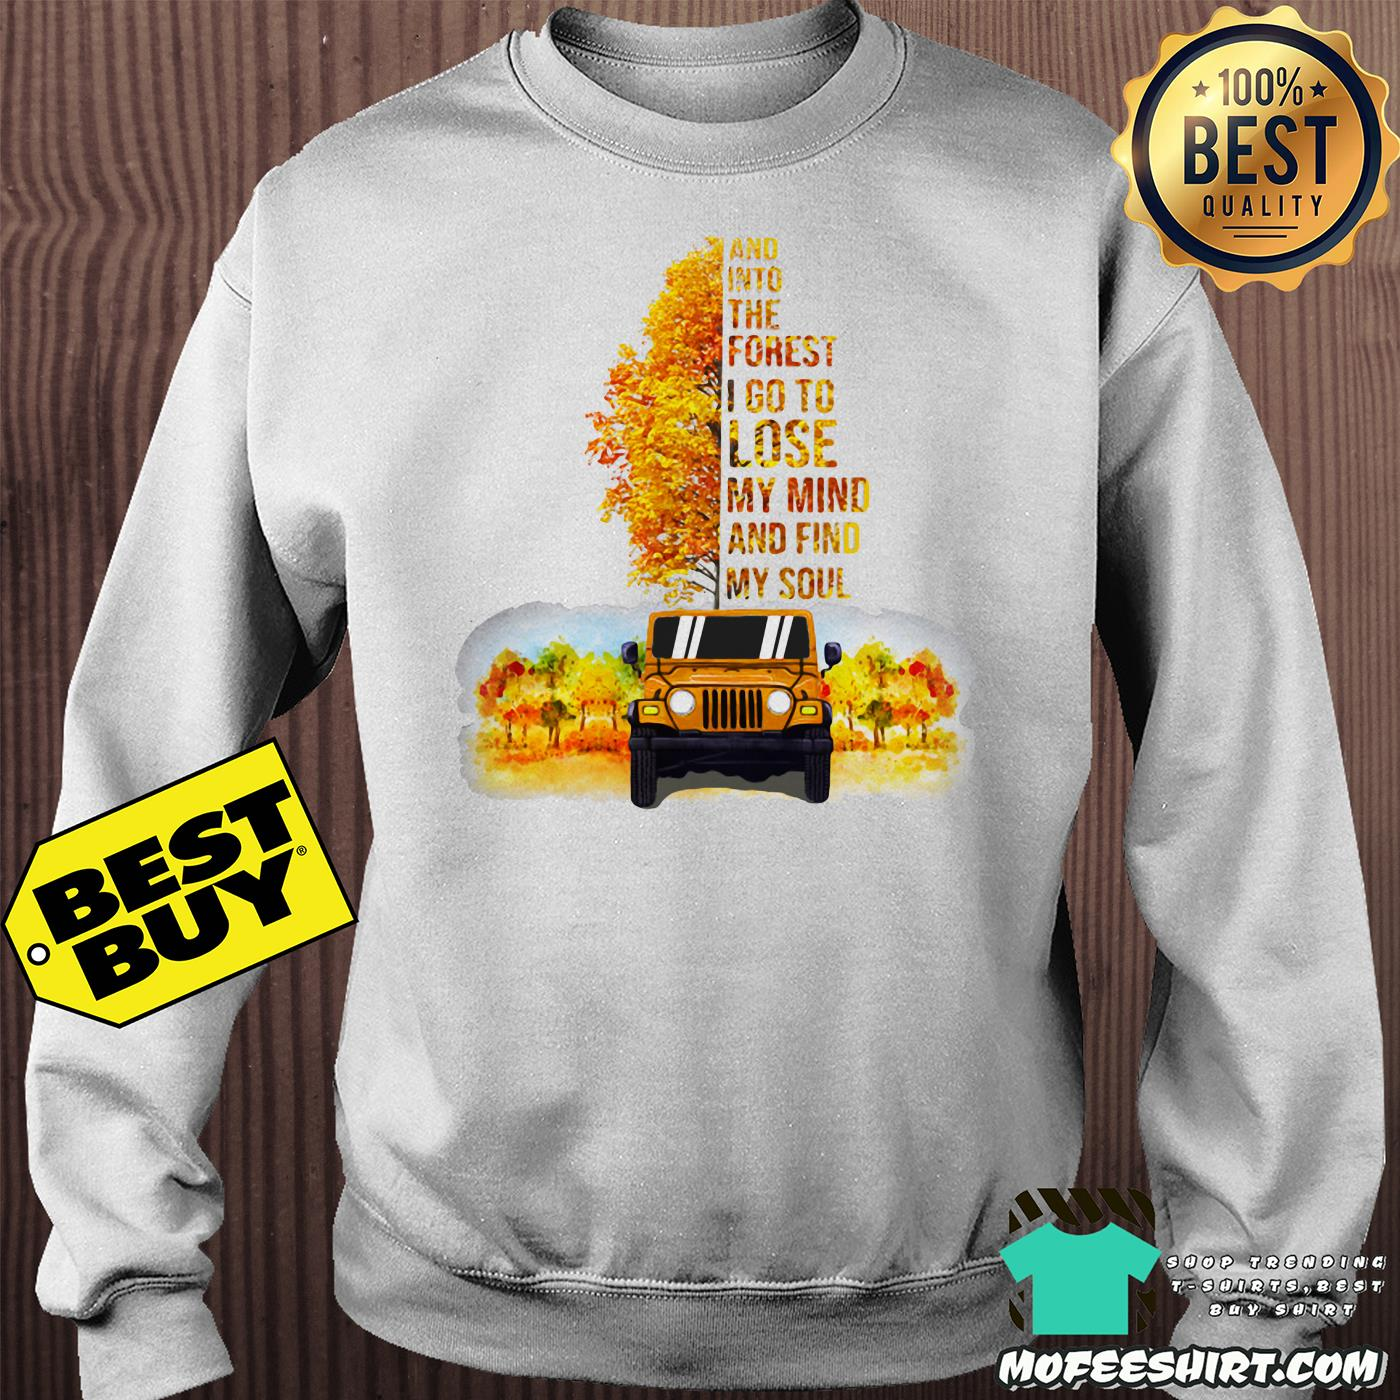 jeep tree and into the forest i go to lose my mind and find my soul autumn sweatshirt - Jeep tree And into the forest I go to lose my mind and find my soul Autumn shirt